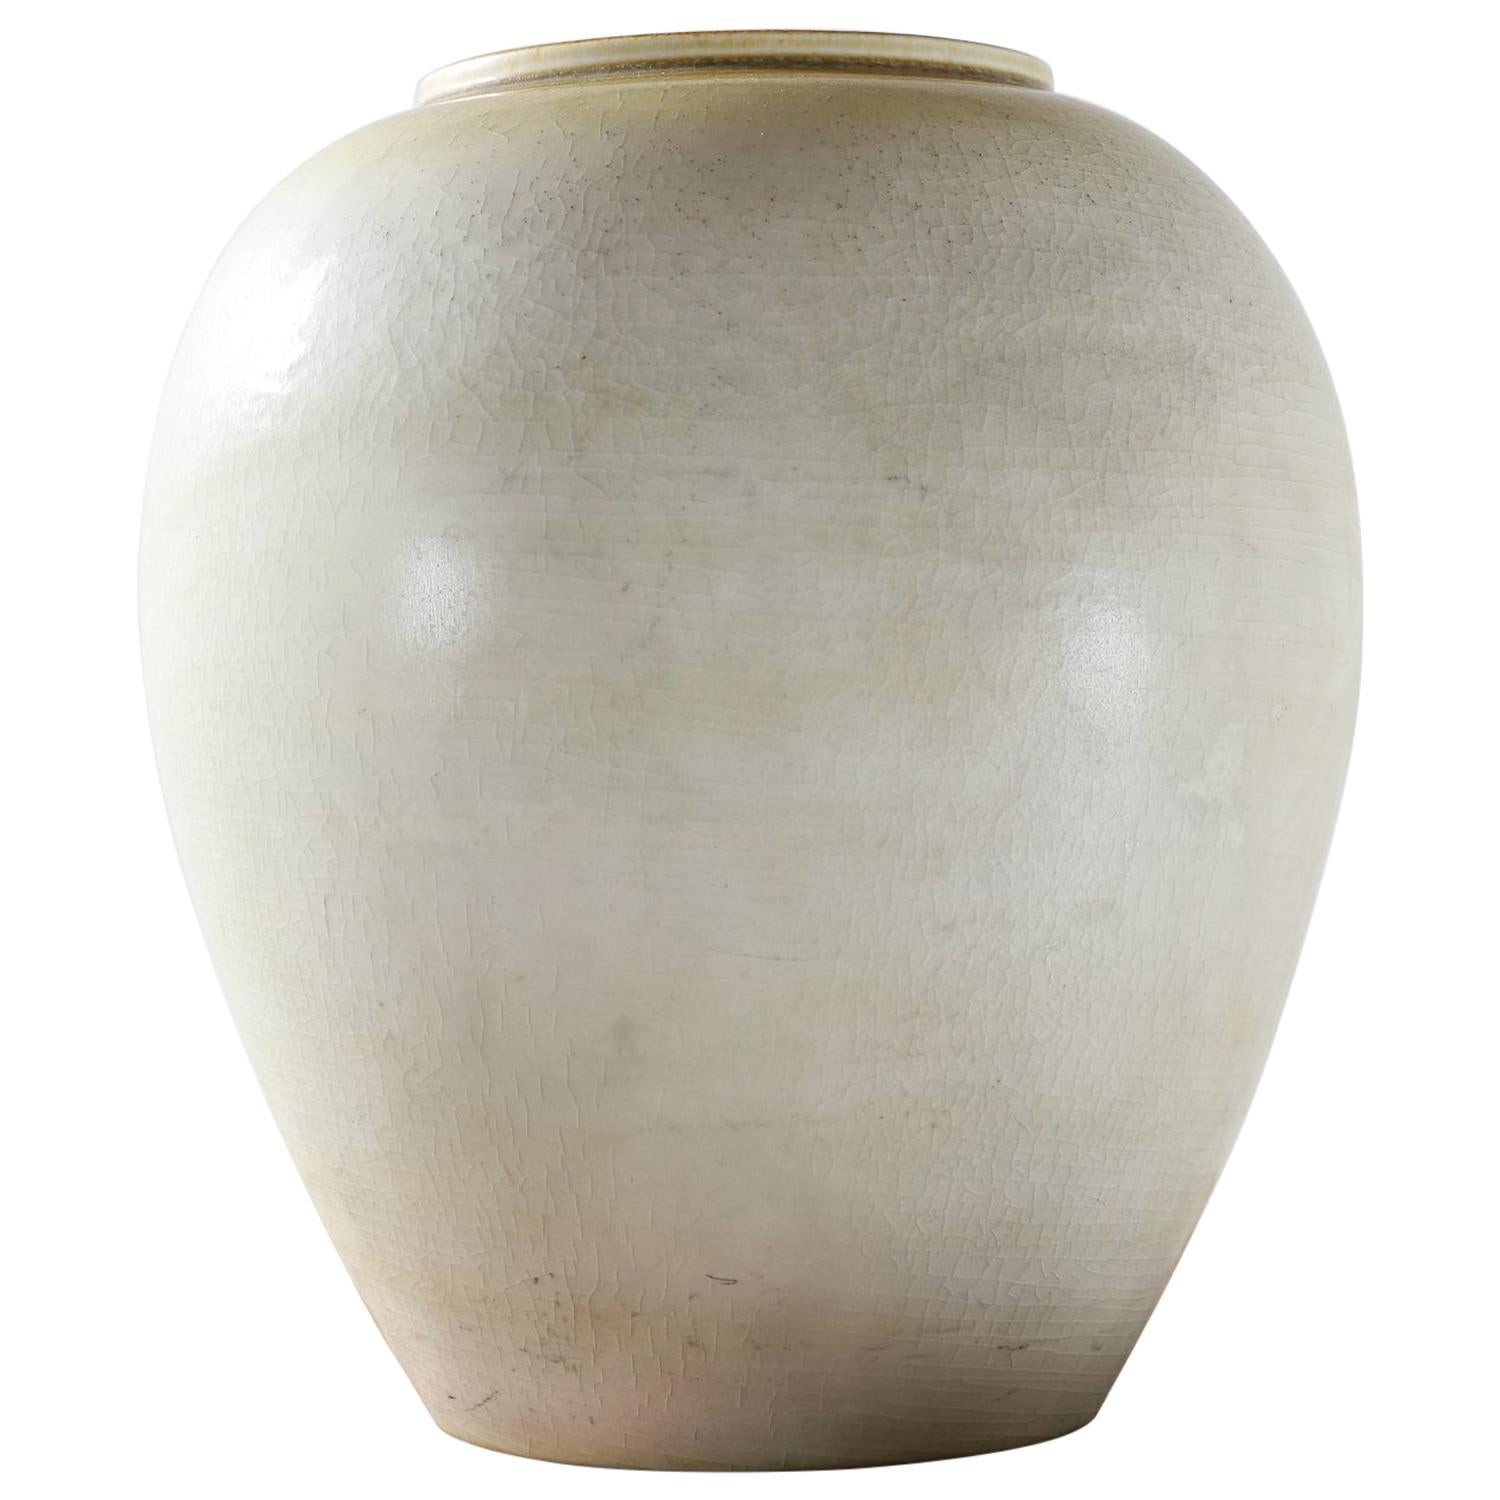 Ceramic Vase Made by Gertrud Lonegren at the Rorstrand Studios Between 1937-42